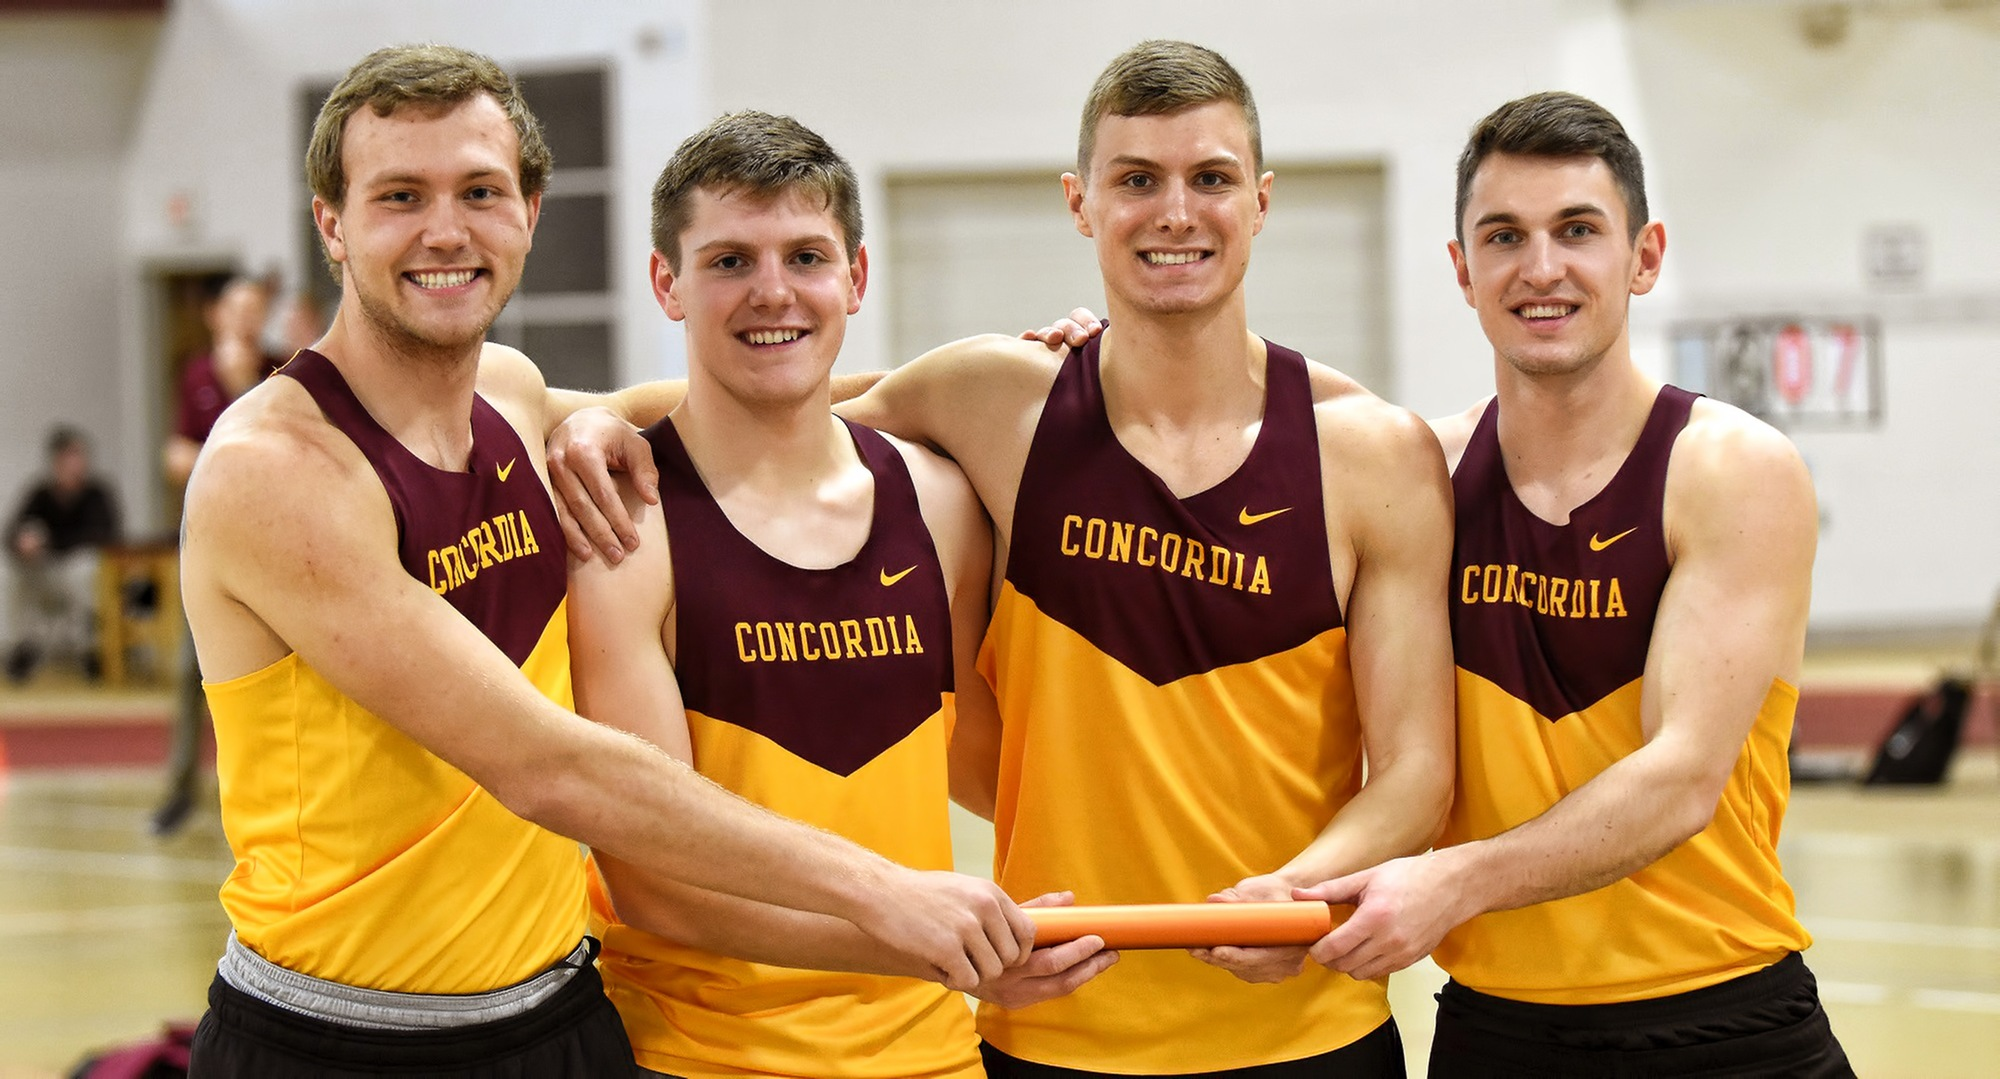 The 4x200-meter relay team of Colin Schuller, Hayden Gagnon, Cal Wright and Tom Whiting broke the school record by running a 1:31.18 at the Cobber Open.